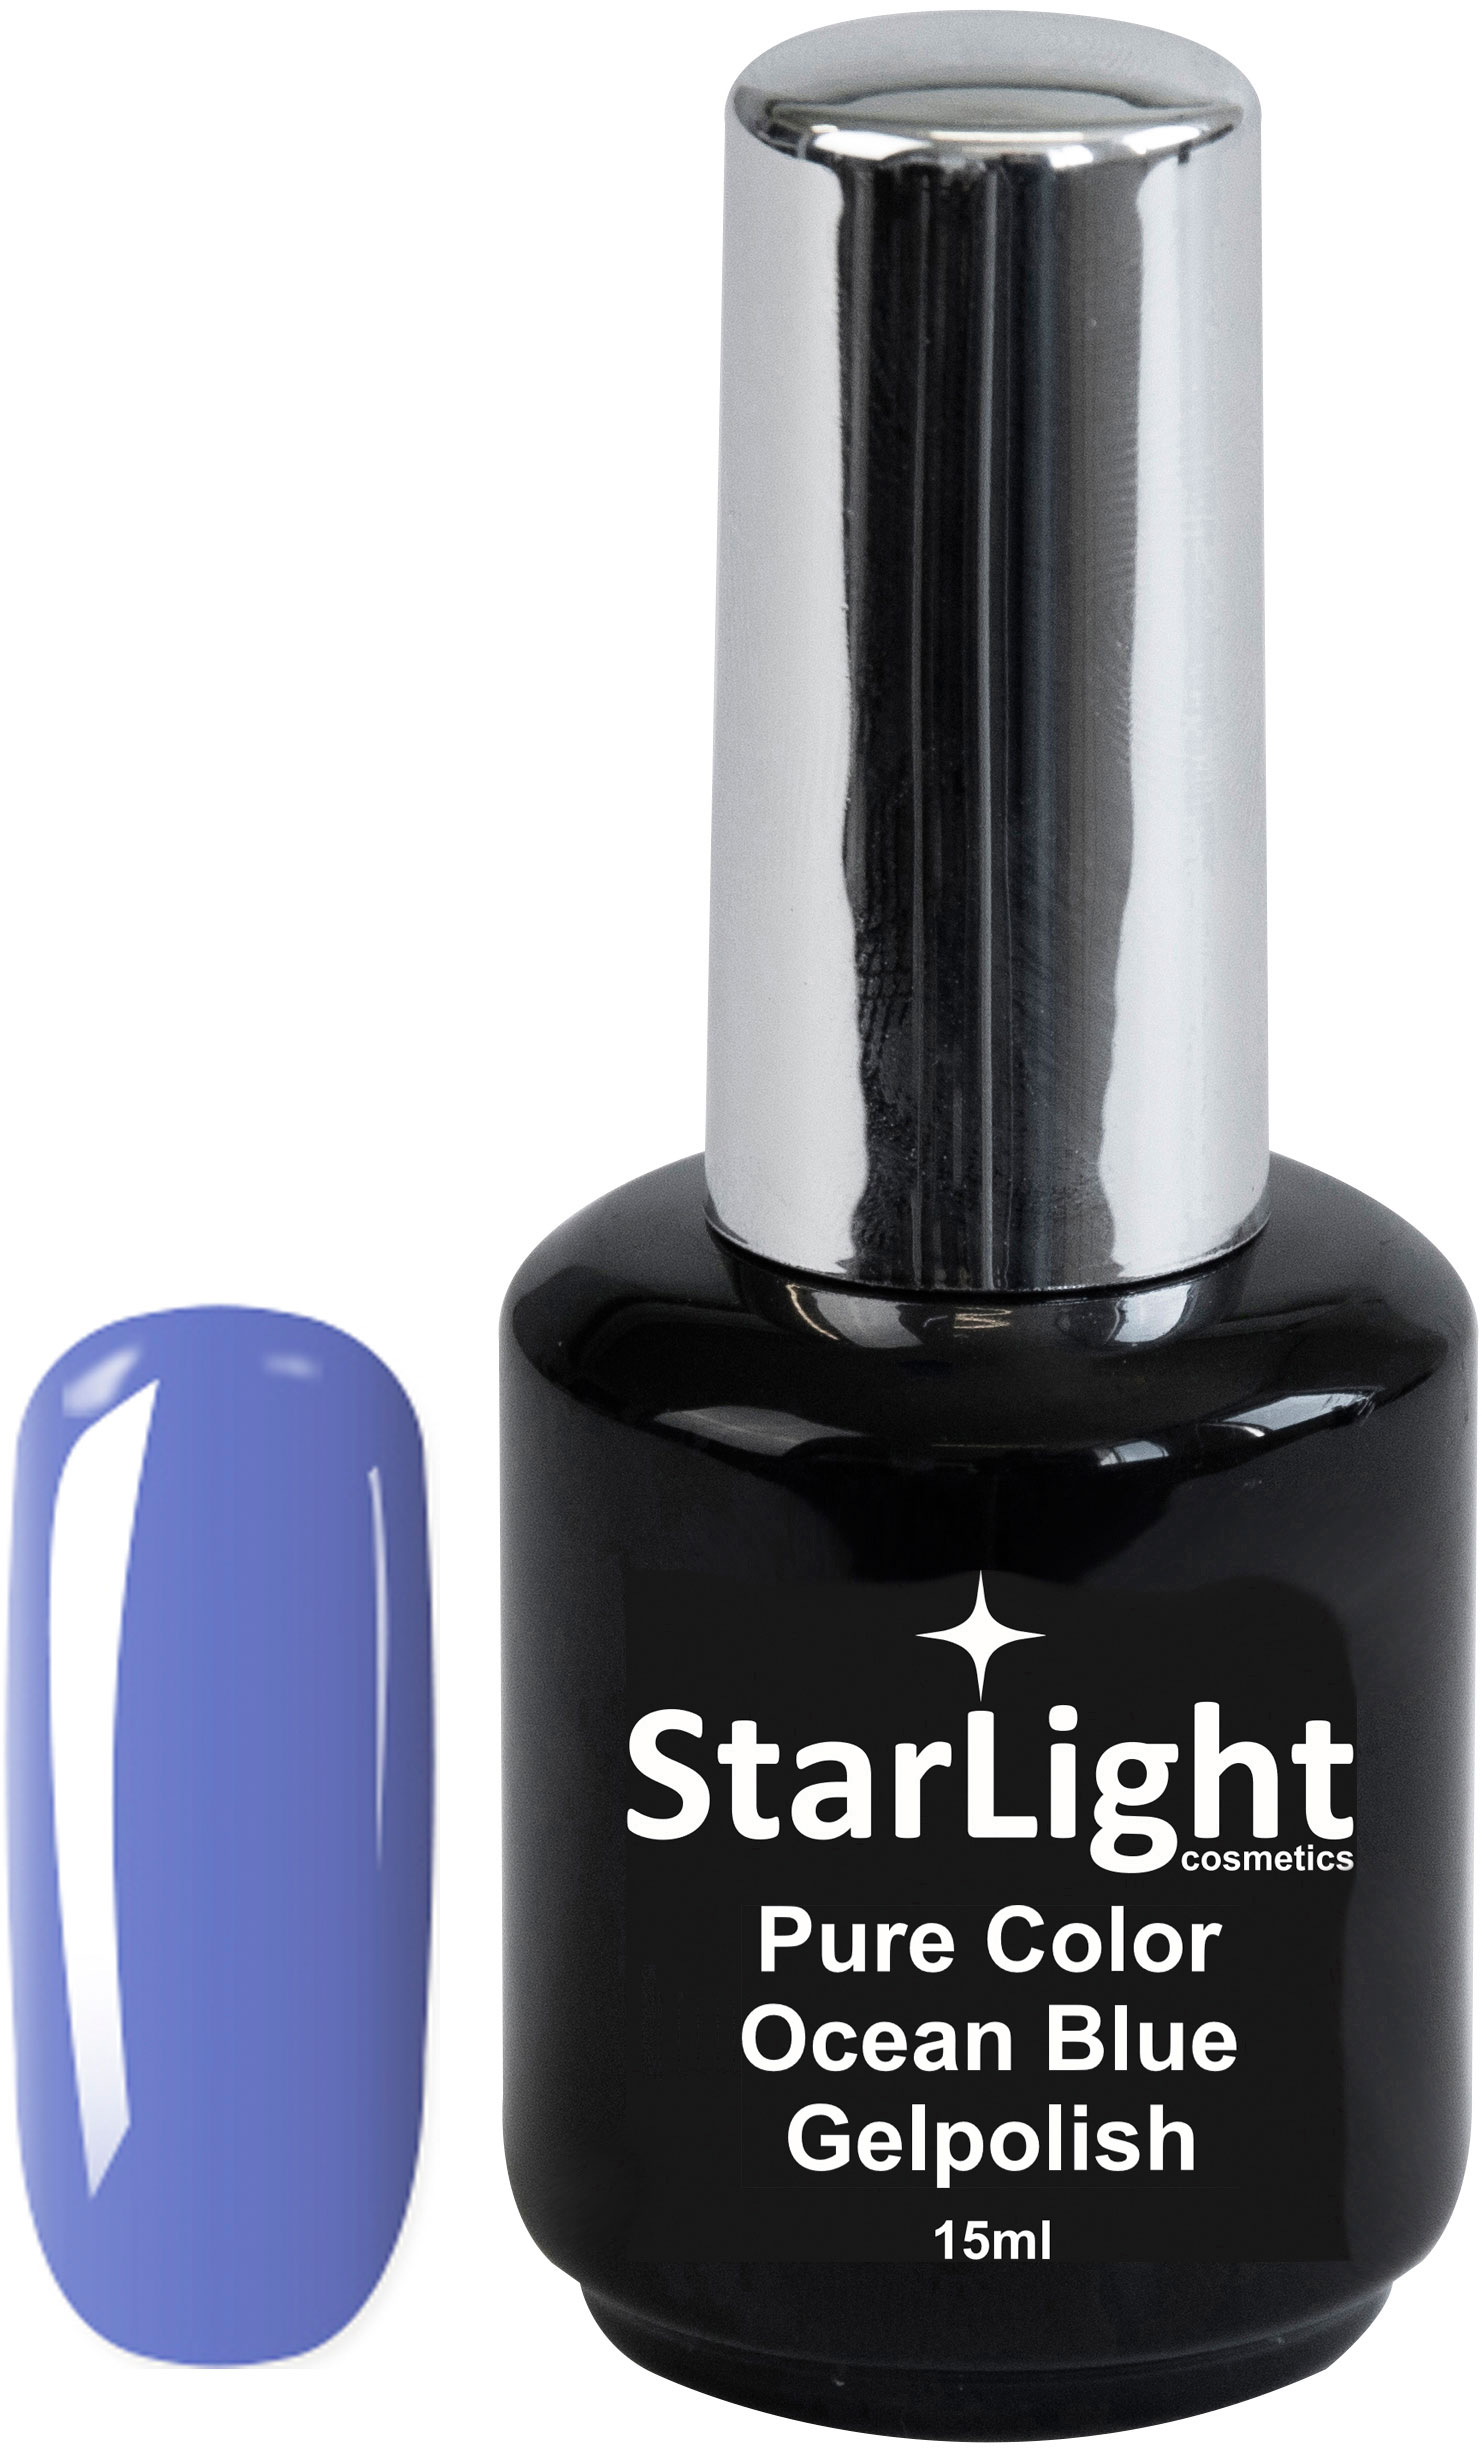 Naglar Gelpolish Pure Color Ocean Blue - 15 ml